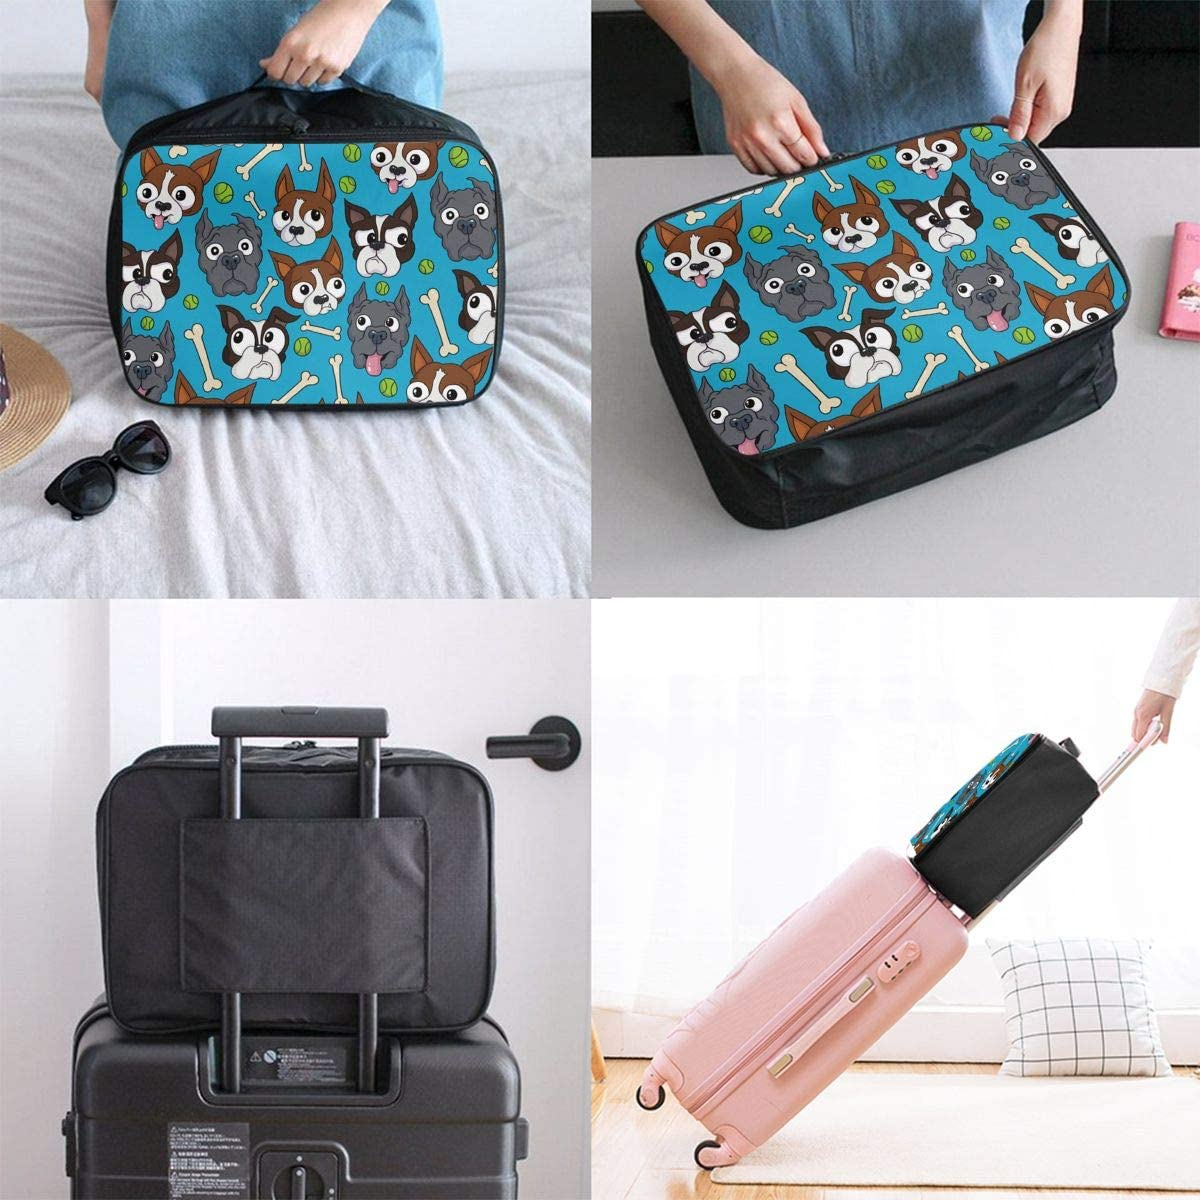 YueLJB Boston Terrier Pictures Lightweight Large Capacity Portable Luggage Bag Travel Duffel Bag Storage Carry Luggage Duffle Tote Bag